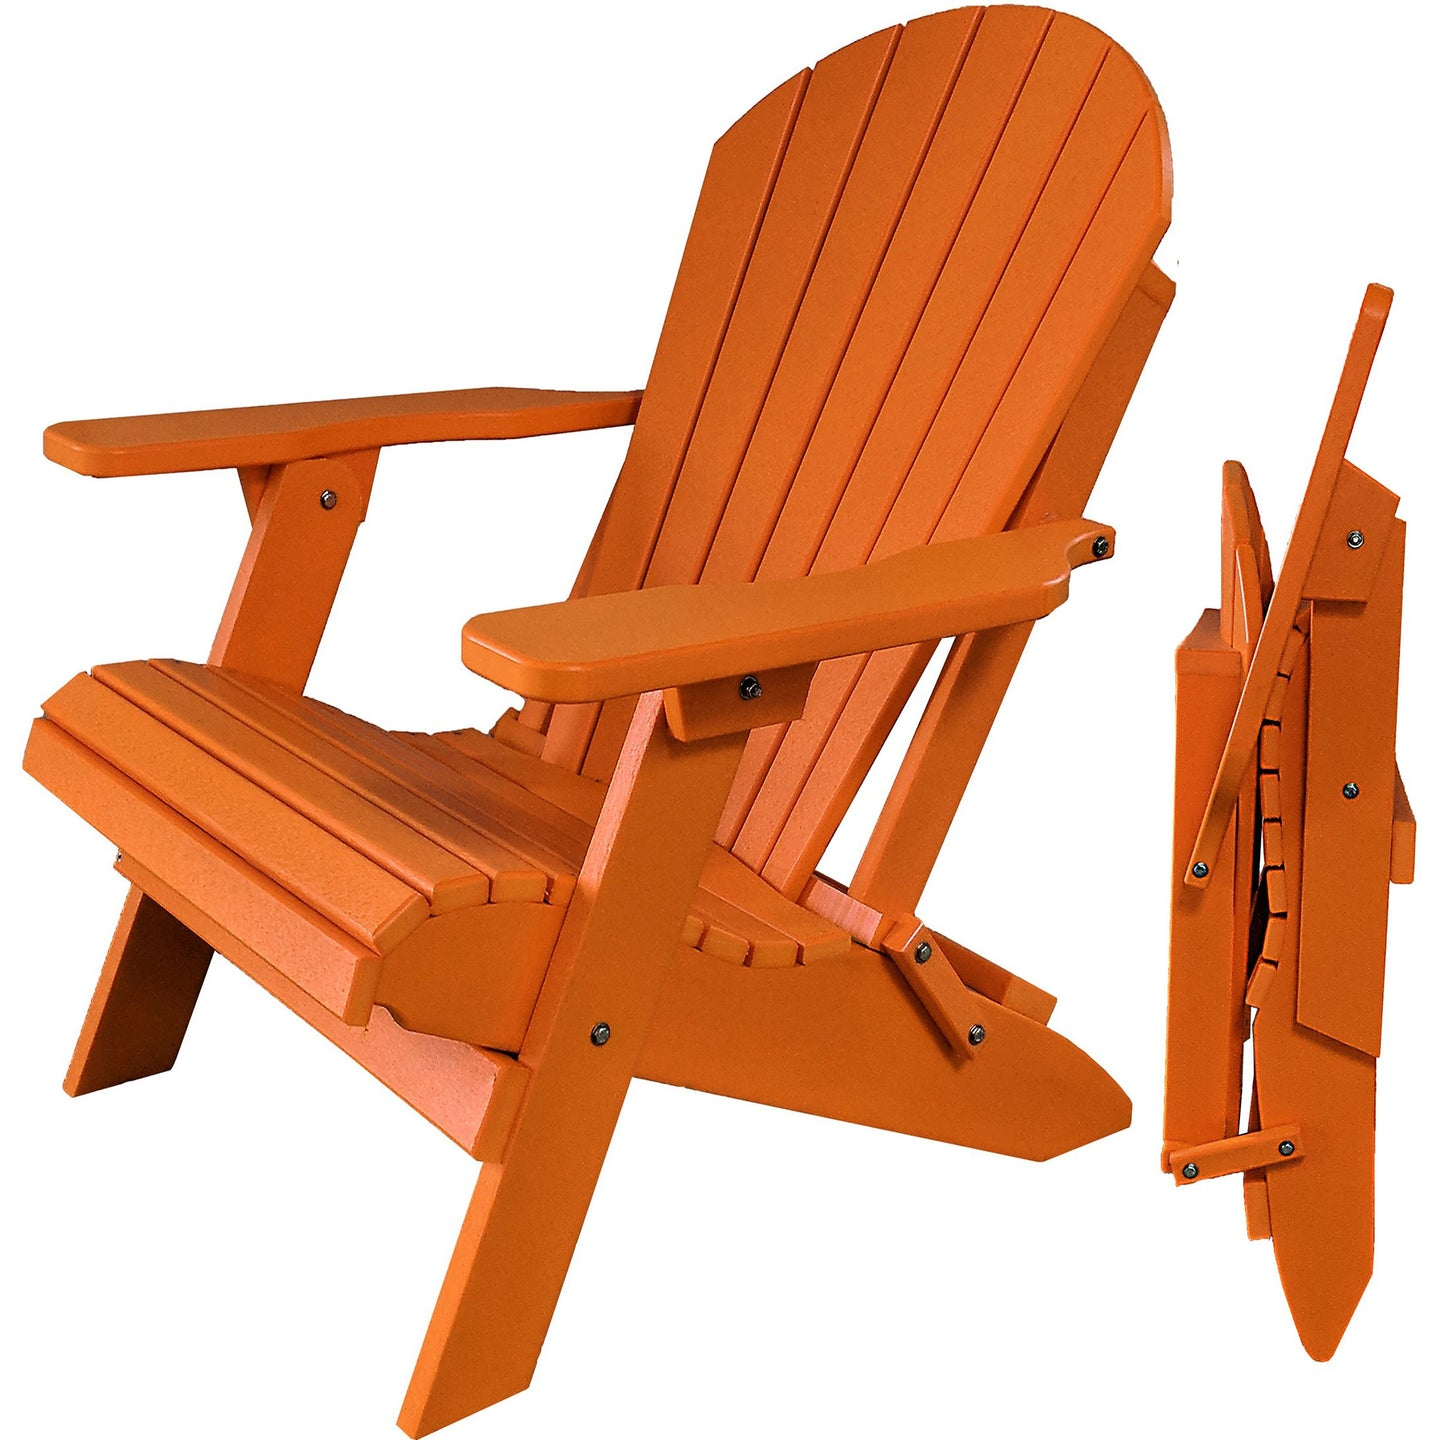 DuraWeather Poly® King Size Folding Adirondack Chair - (Mango Orange)